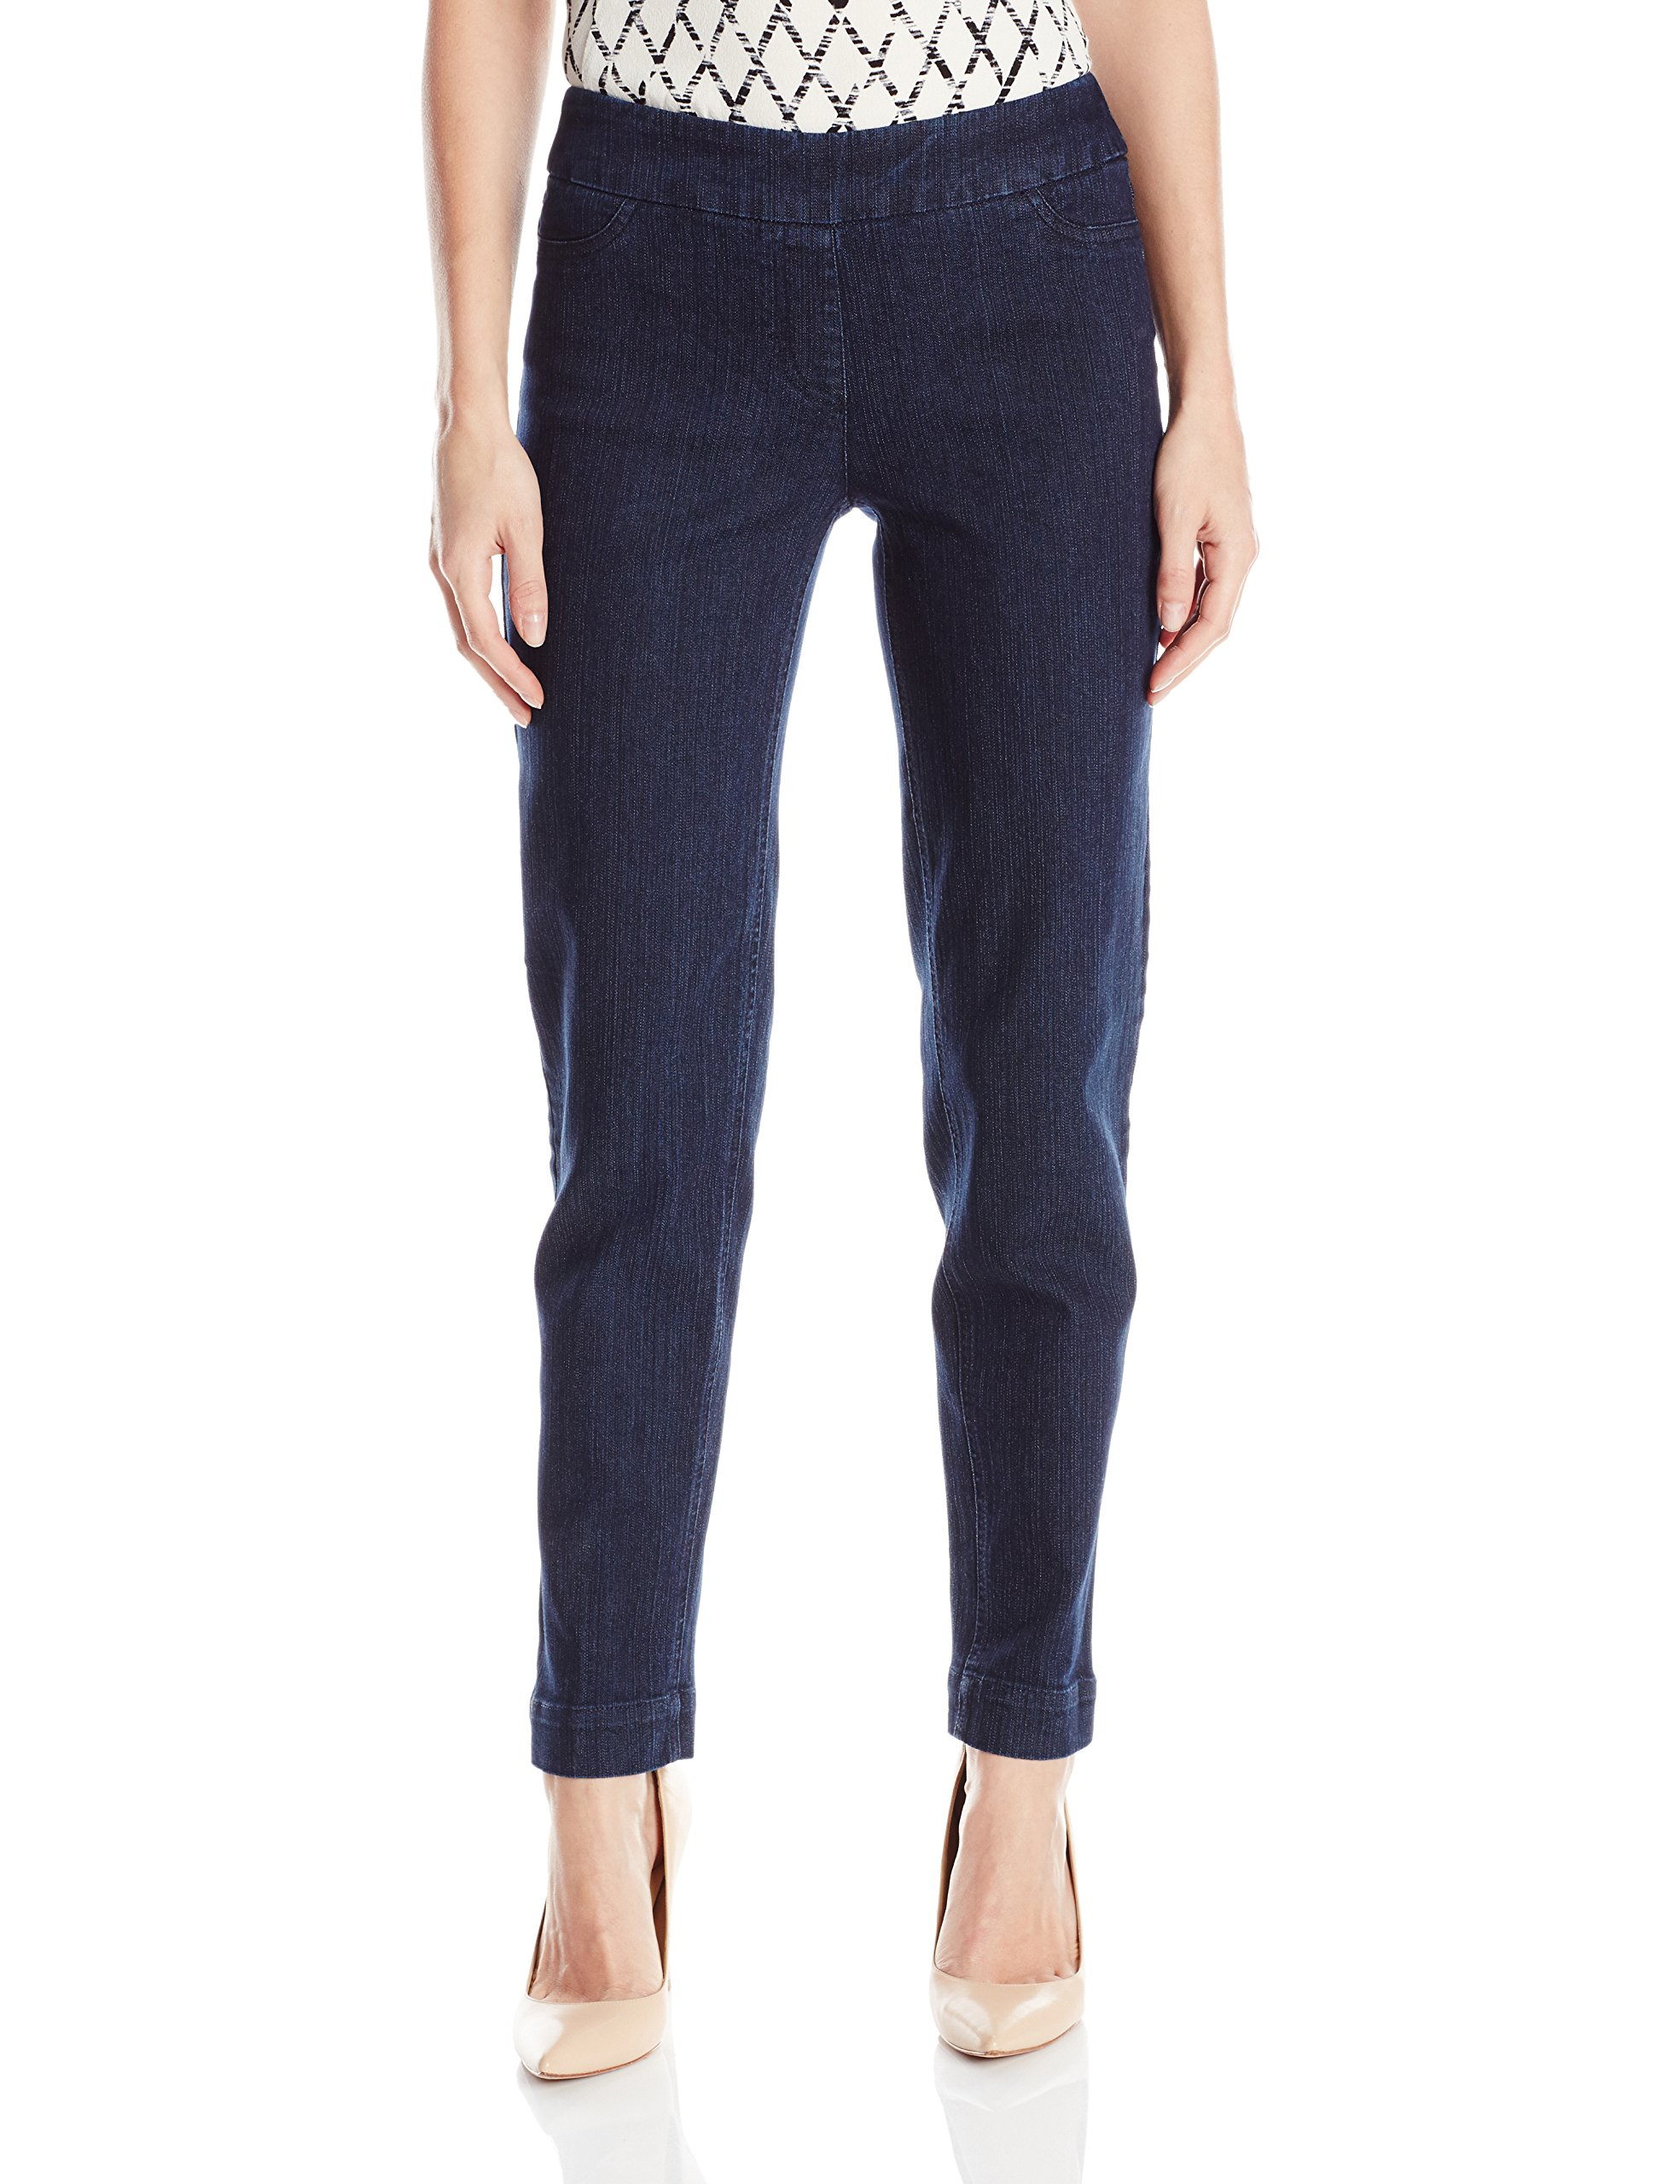 SLIM-SATION Women's Wide Band Pull On Straight Leg Ankle Pant with Tummy Control, Denim, 18